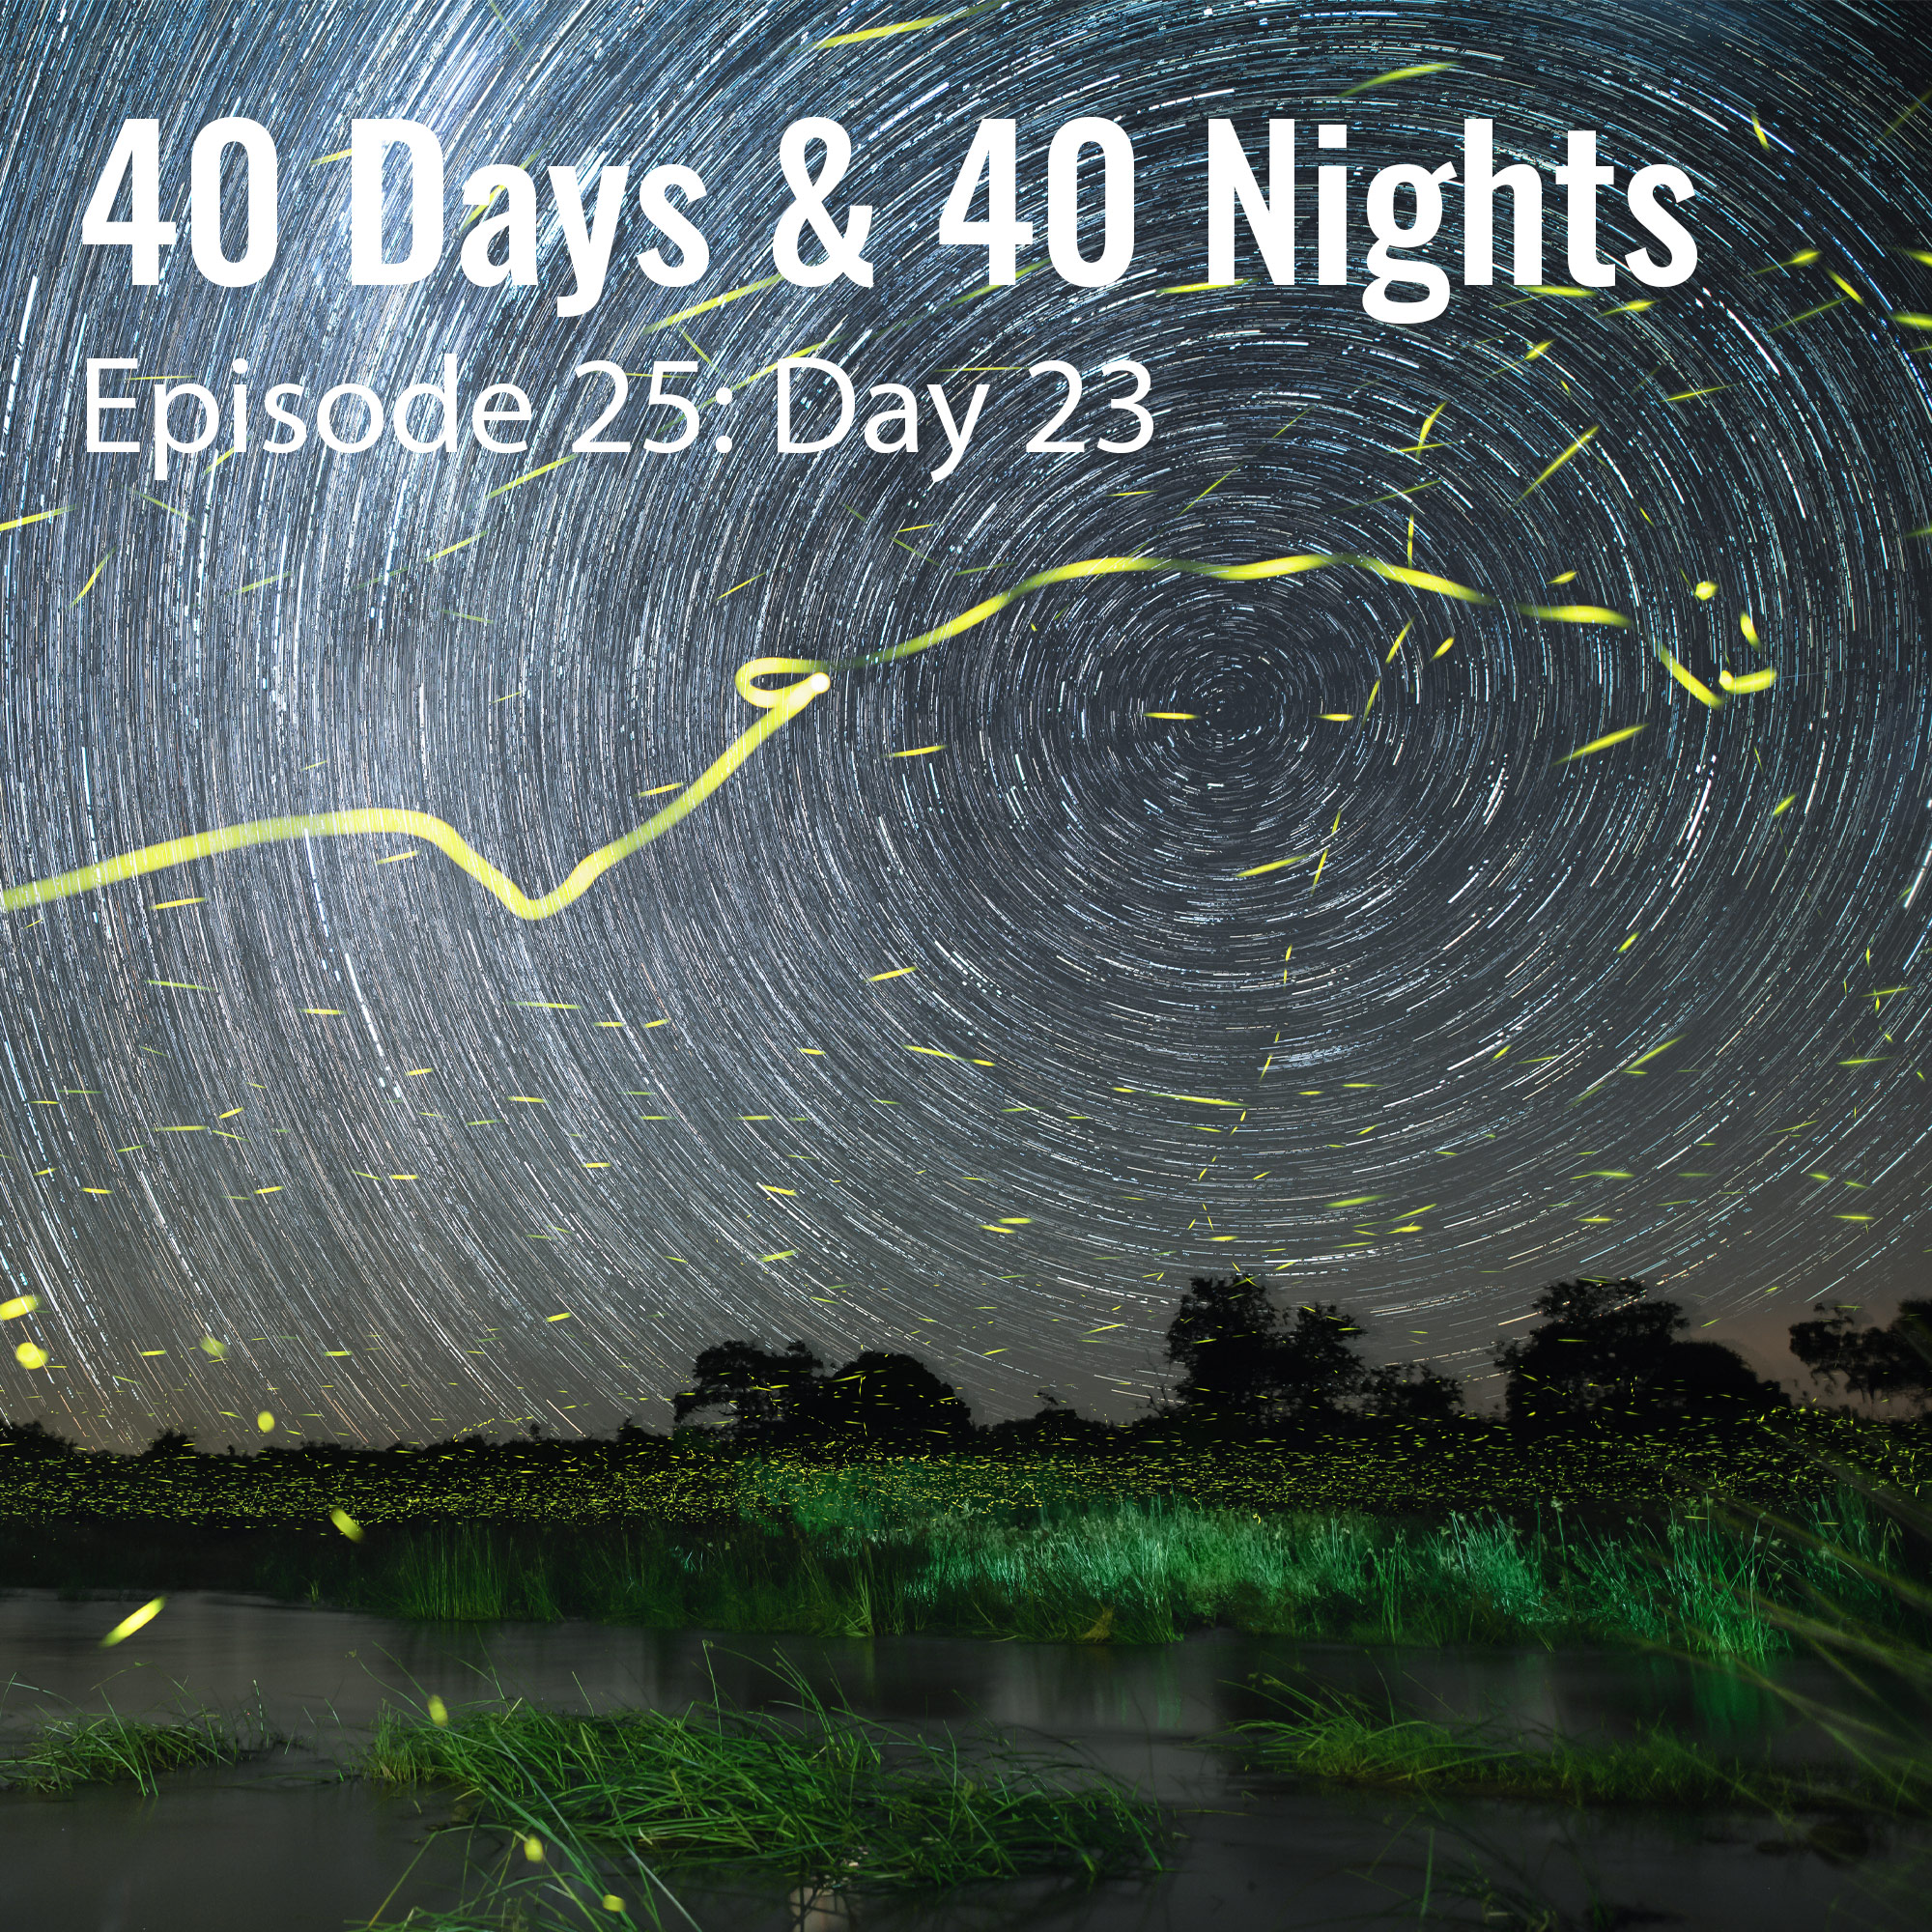 Day-23 40 Days and 40 Nights